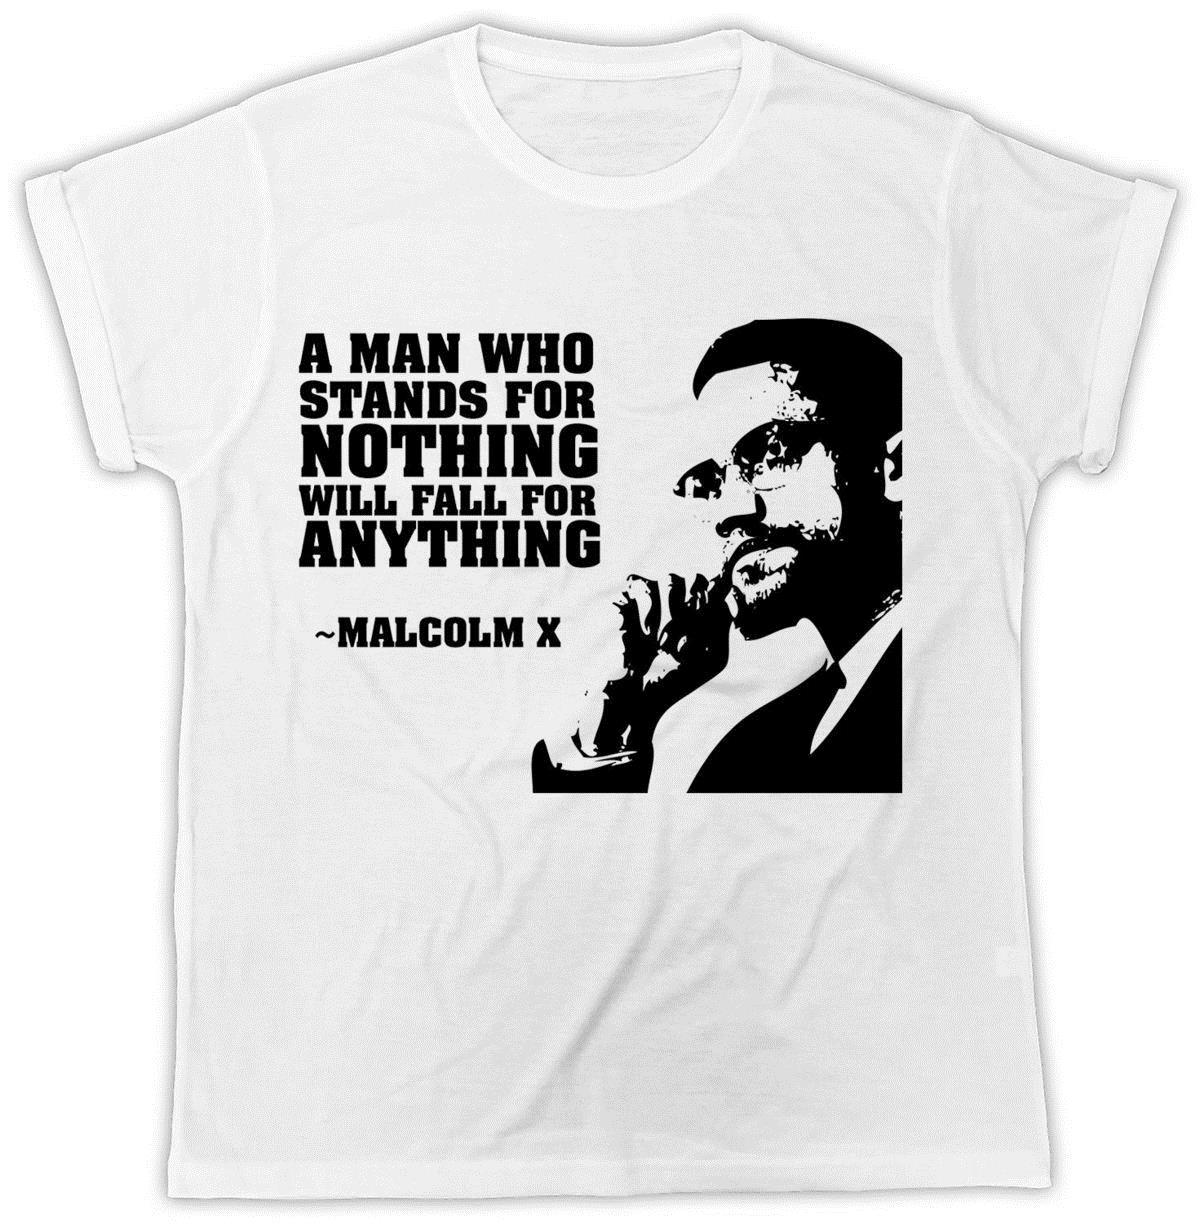 Malcolm X T Shirt Famous Quotes Black Rights Novelty Unisex Tshirt O